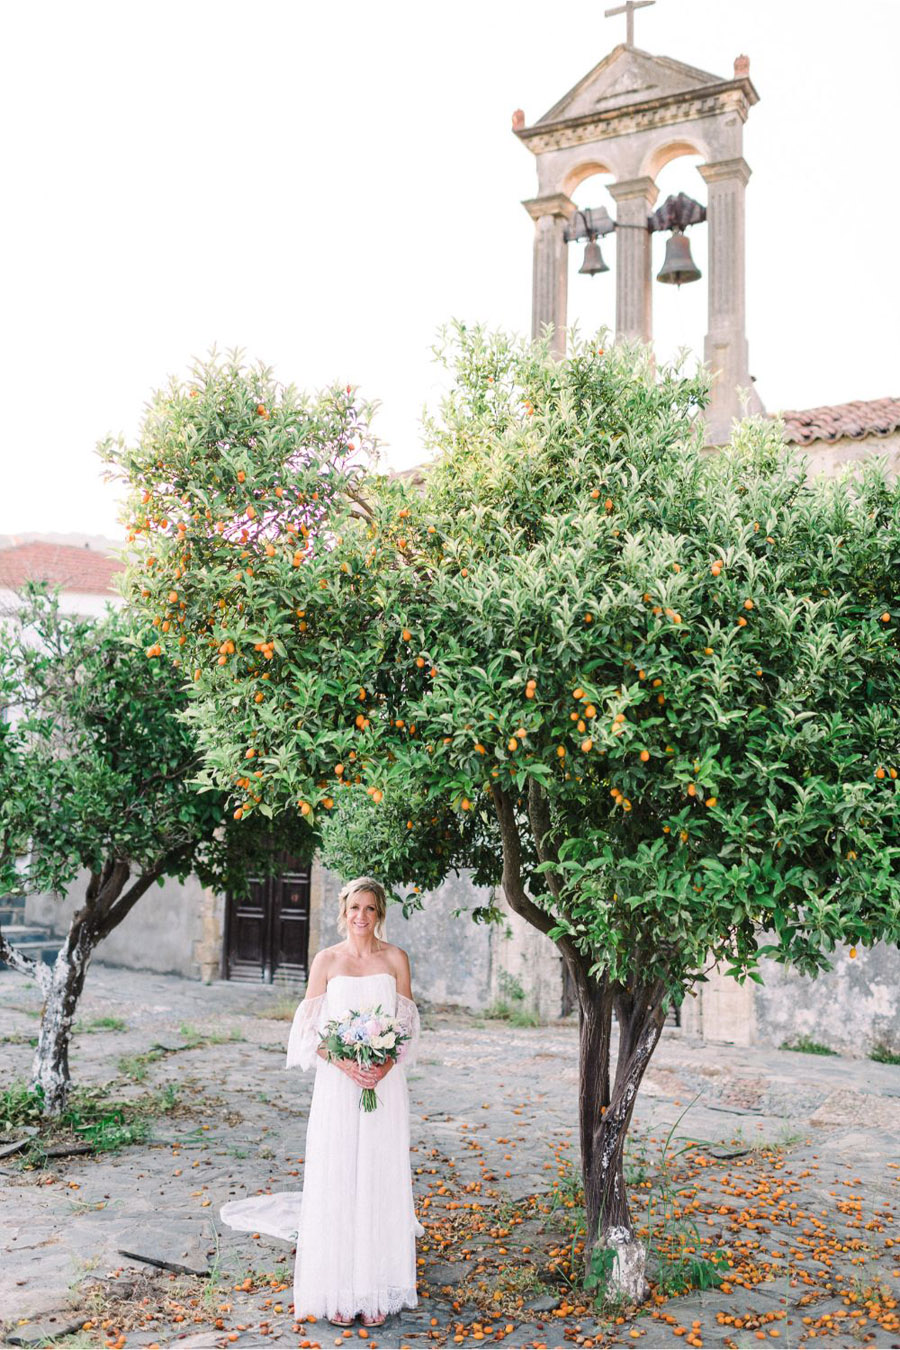 destination wedding in Crete with Crete For Love wedding planners (41)